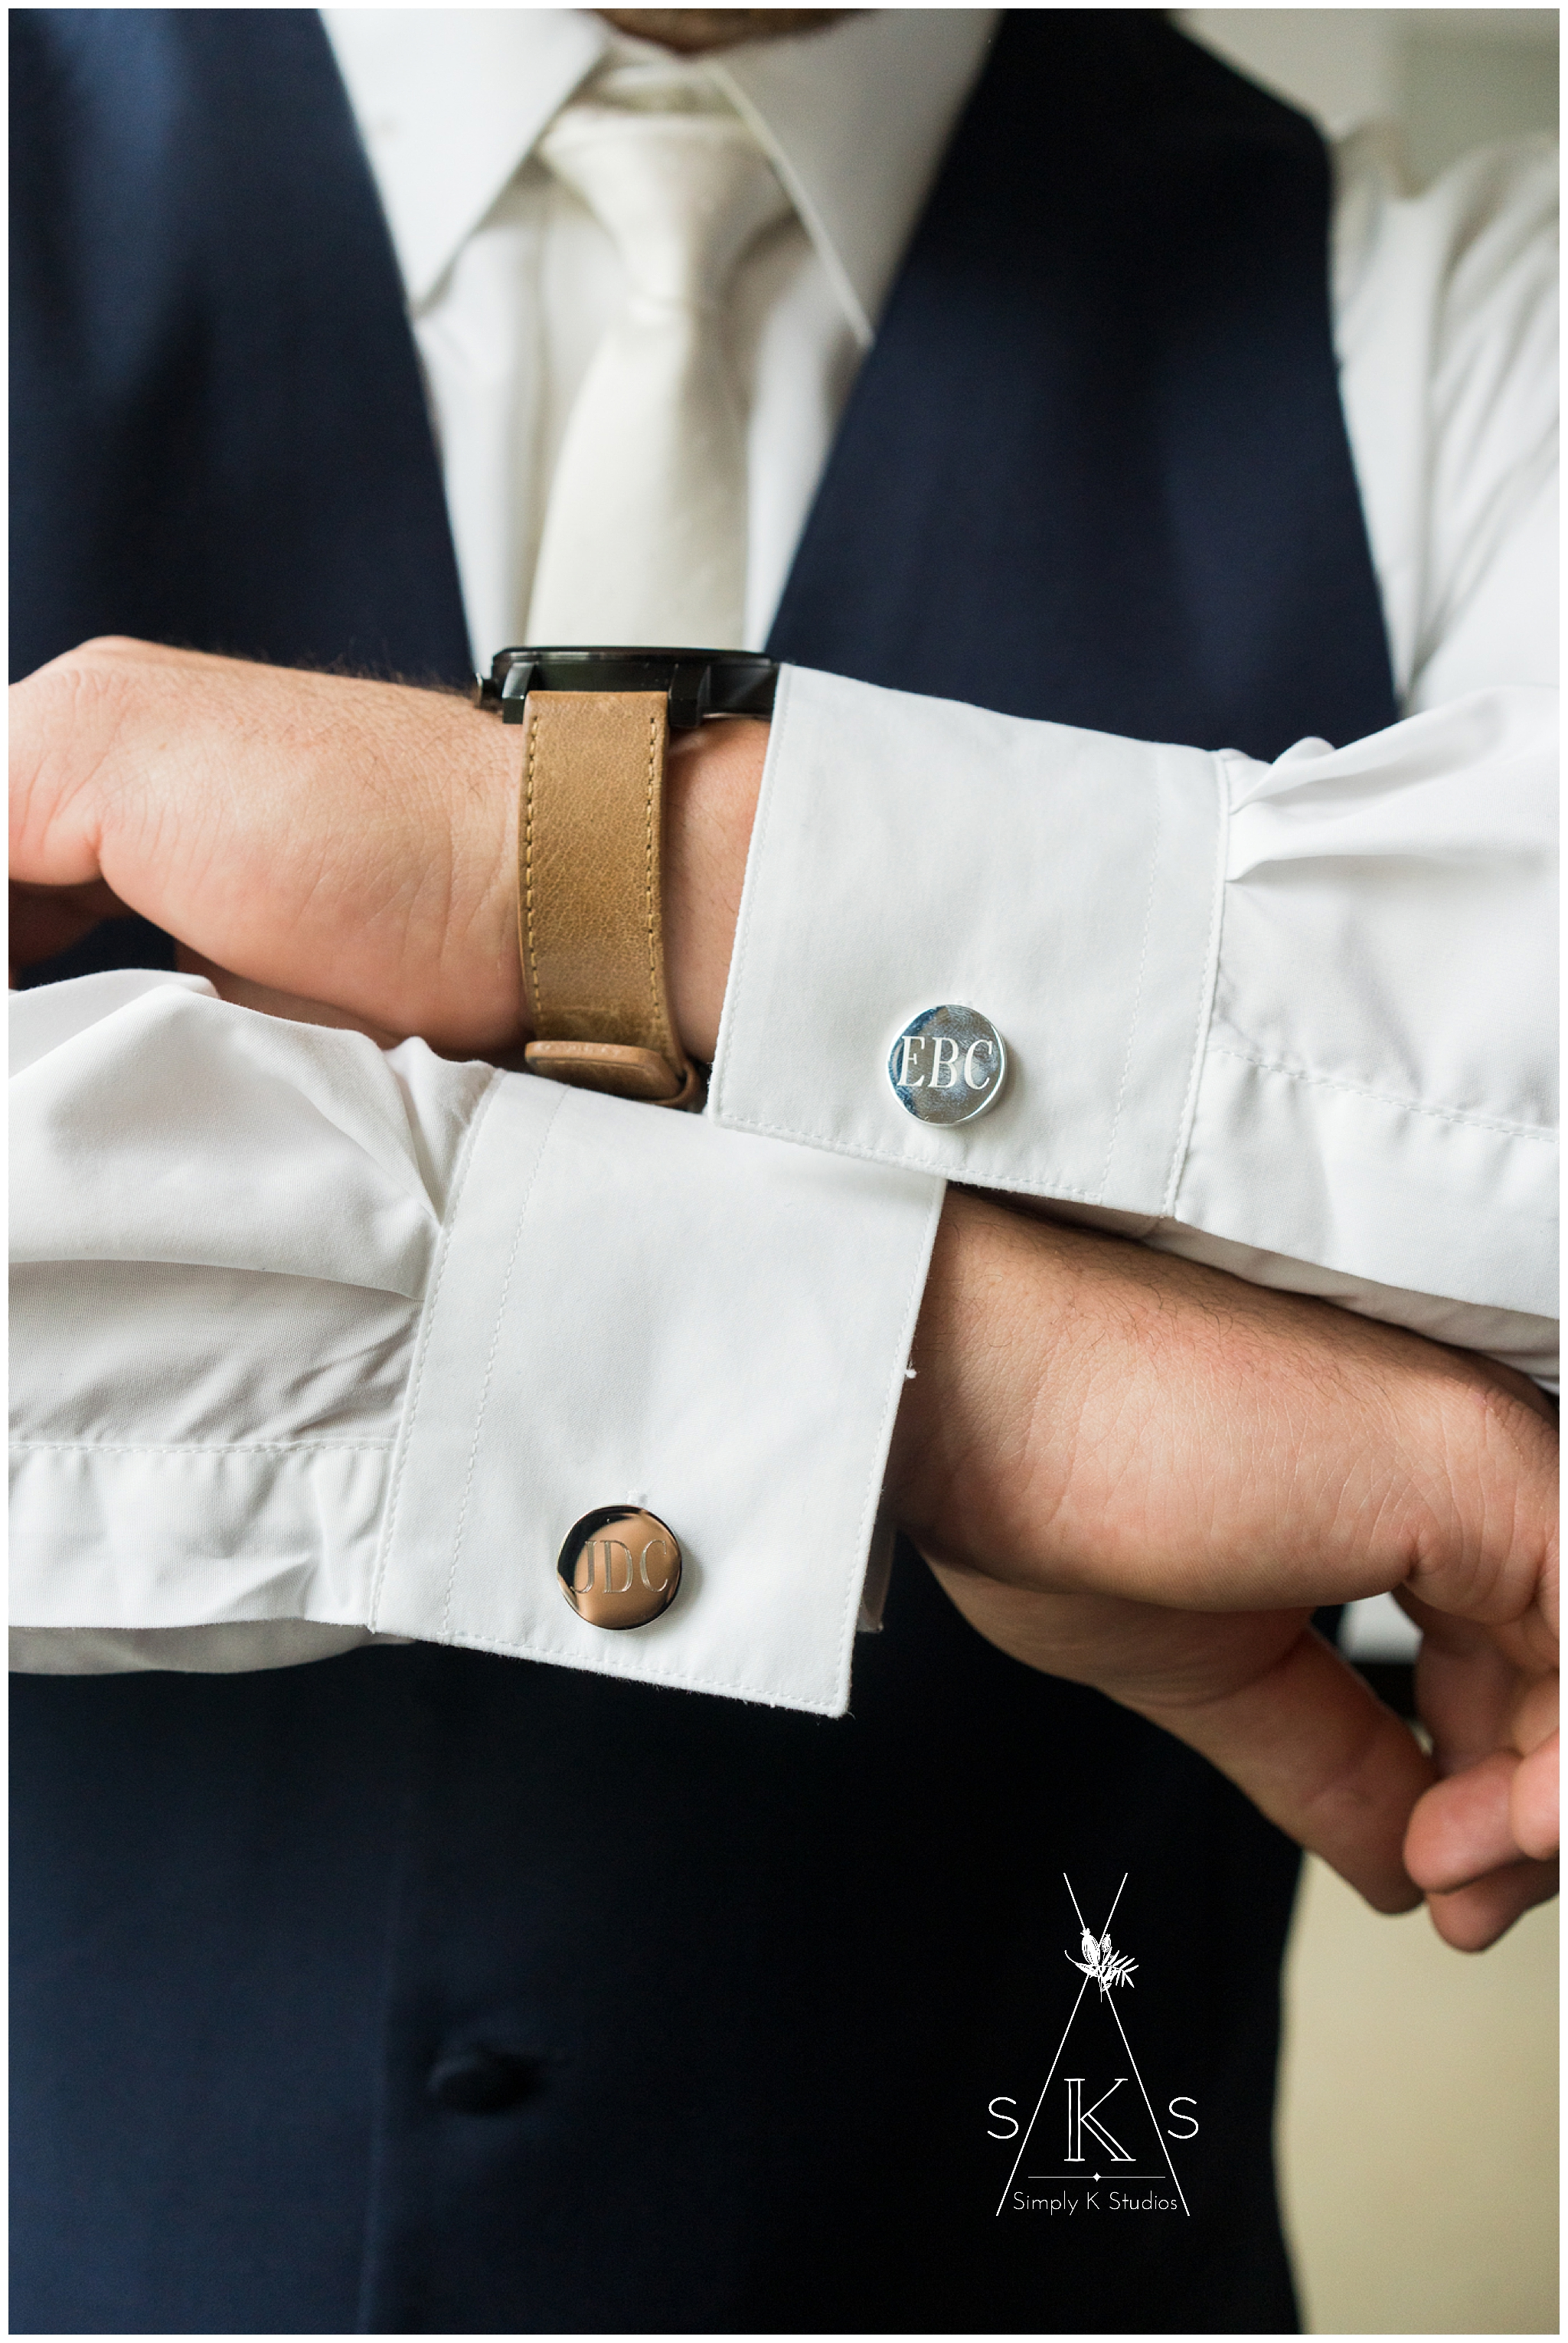 Groom with custom cufflinks for his wedding